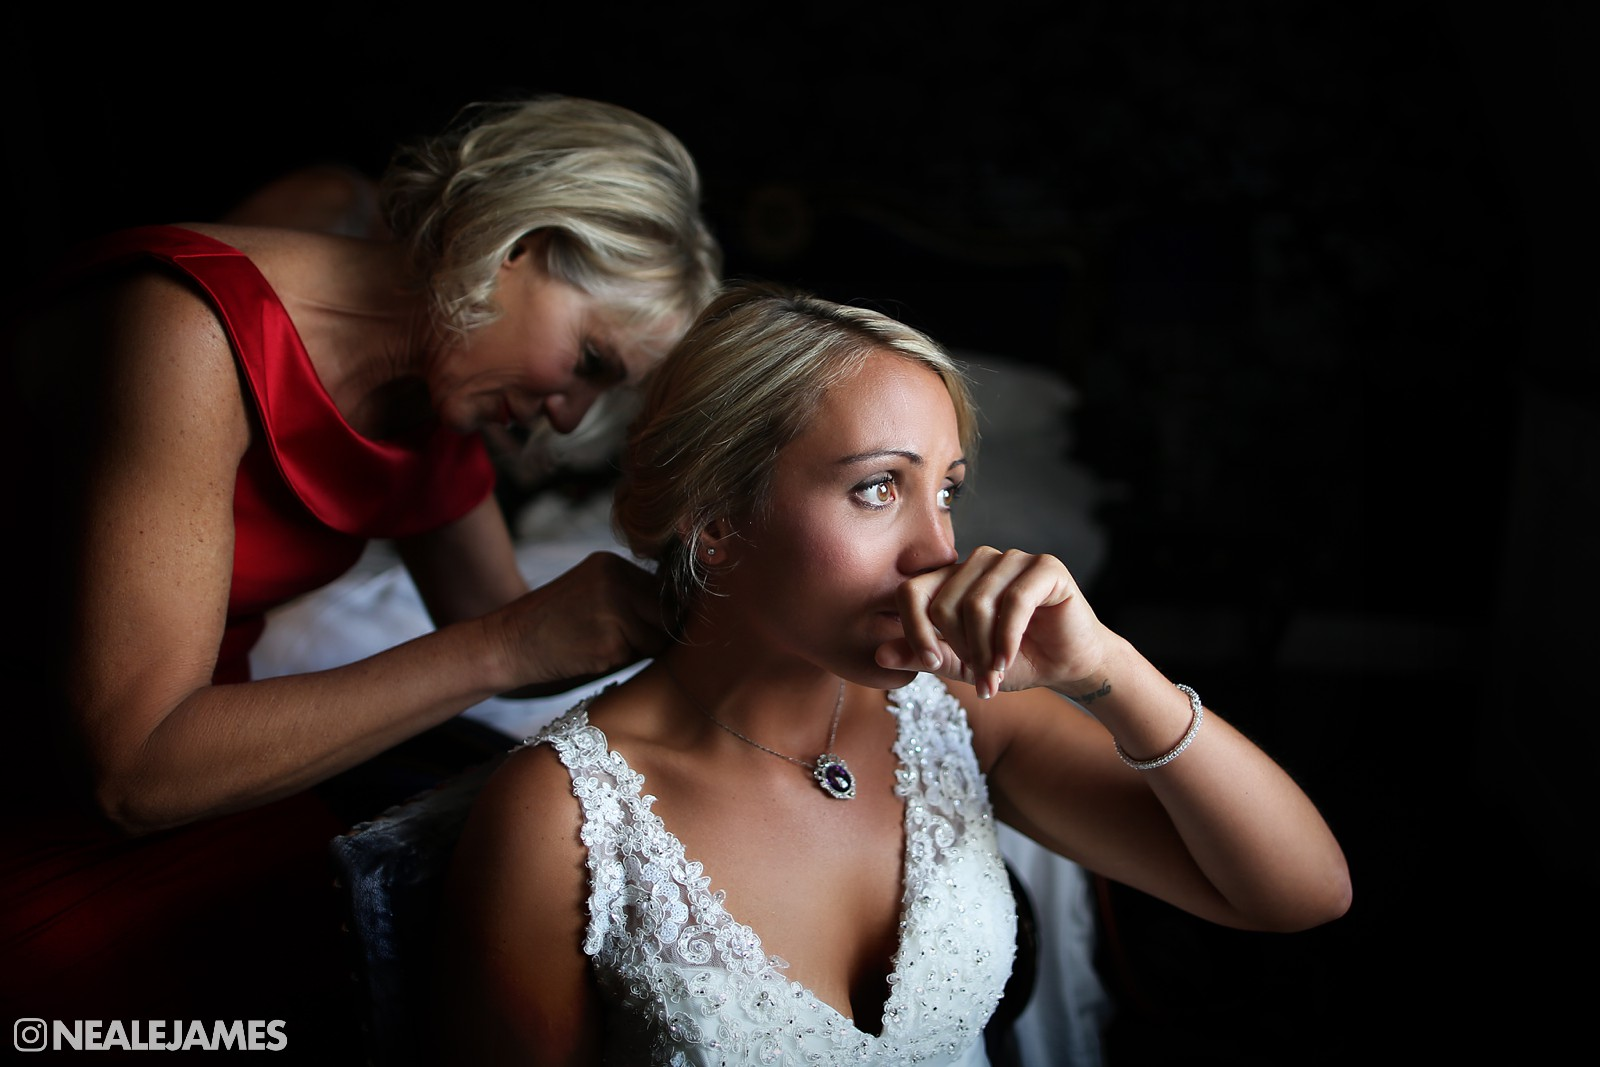 A colour picture of an emotional bride, just prior to the ceremony having make-up applied